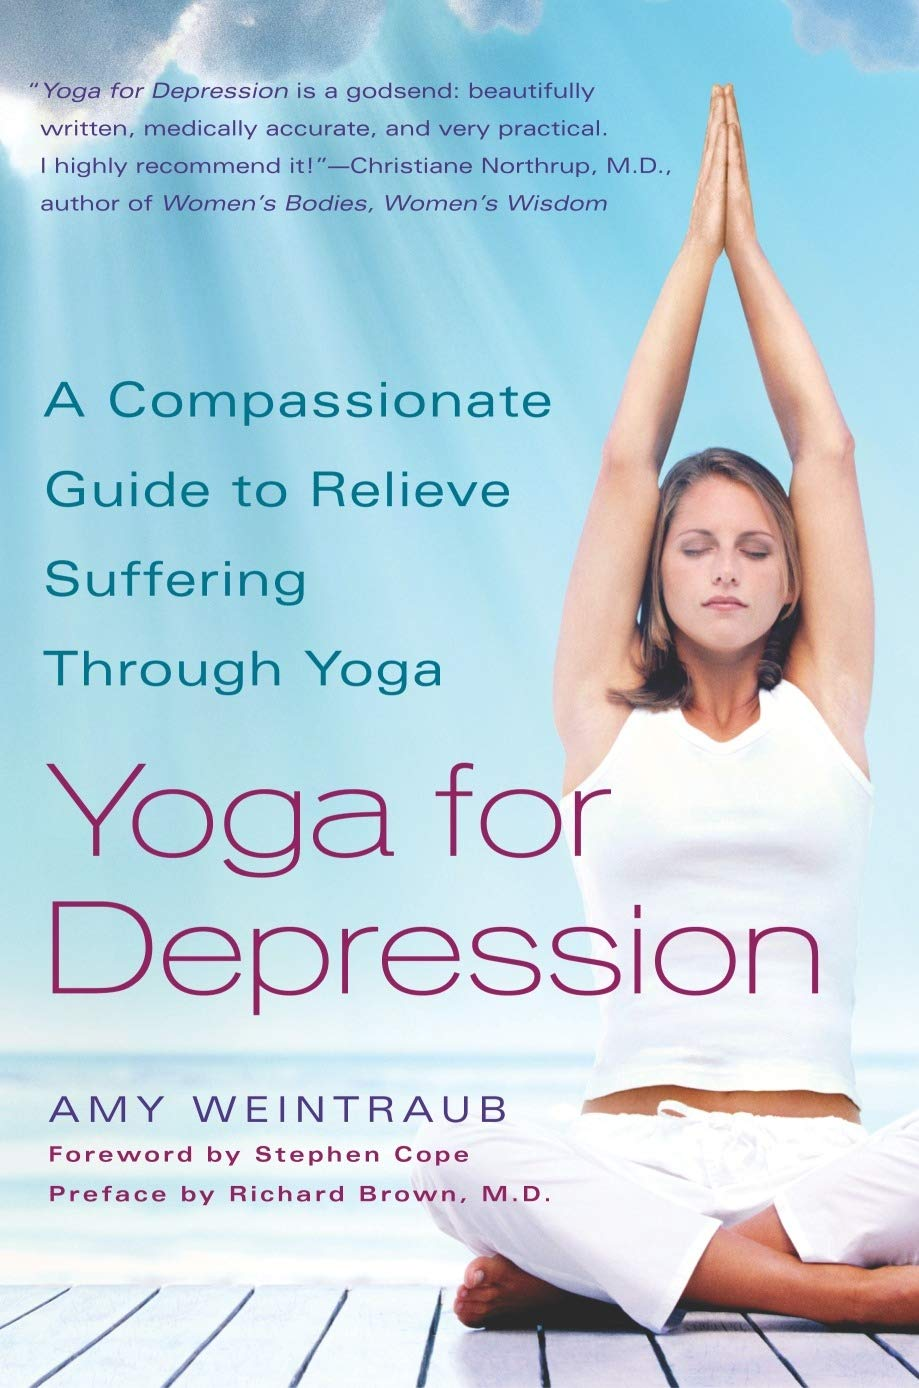 Yoga for Depression: A Compassionate Guide to Relieve Suffering